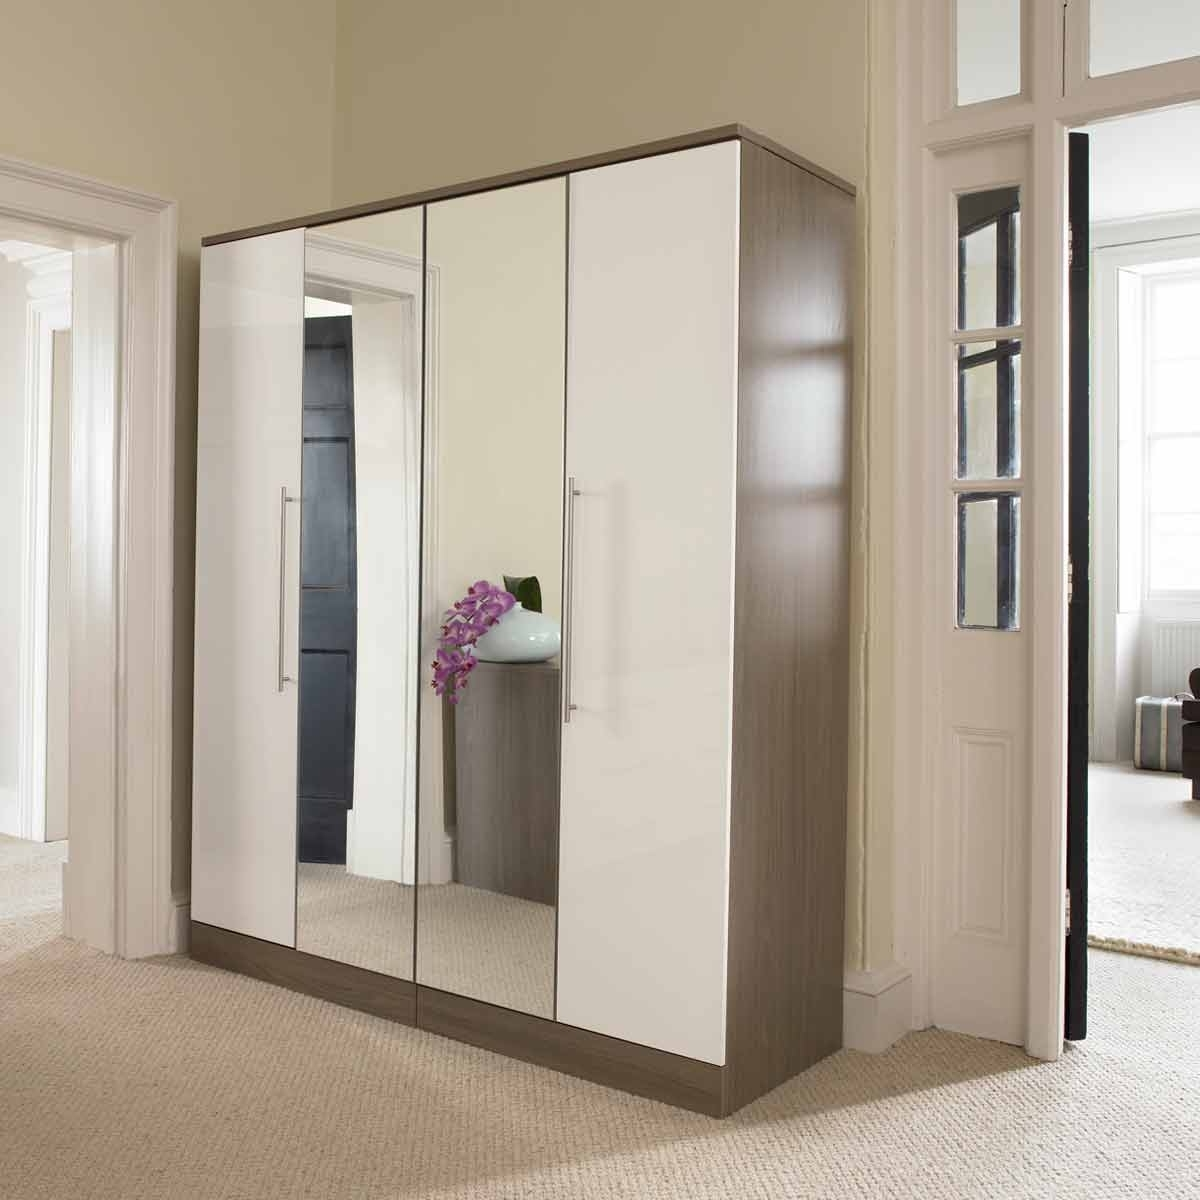 2018 Mirror Design Ideas: Sliding Hinged Wardrobe With Mirror Doors Intended For Wardrobes With Mirror (View 1 of 15)